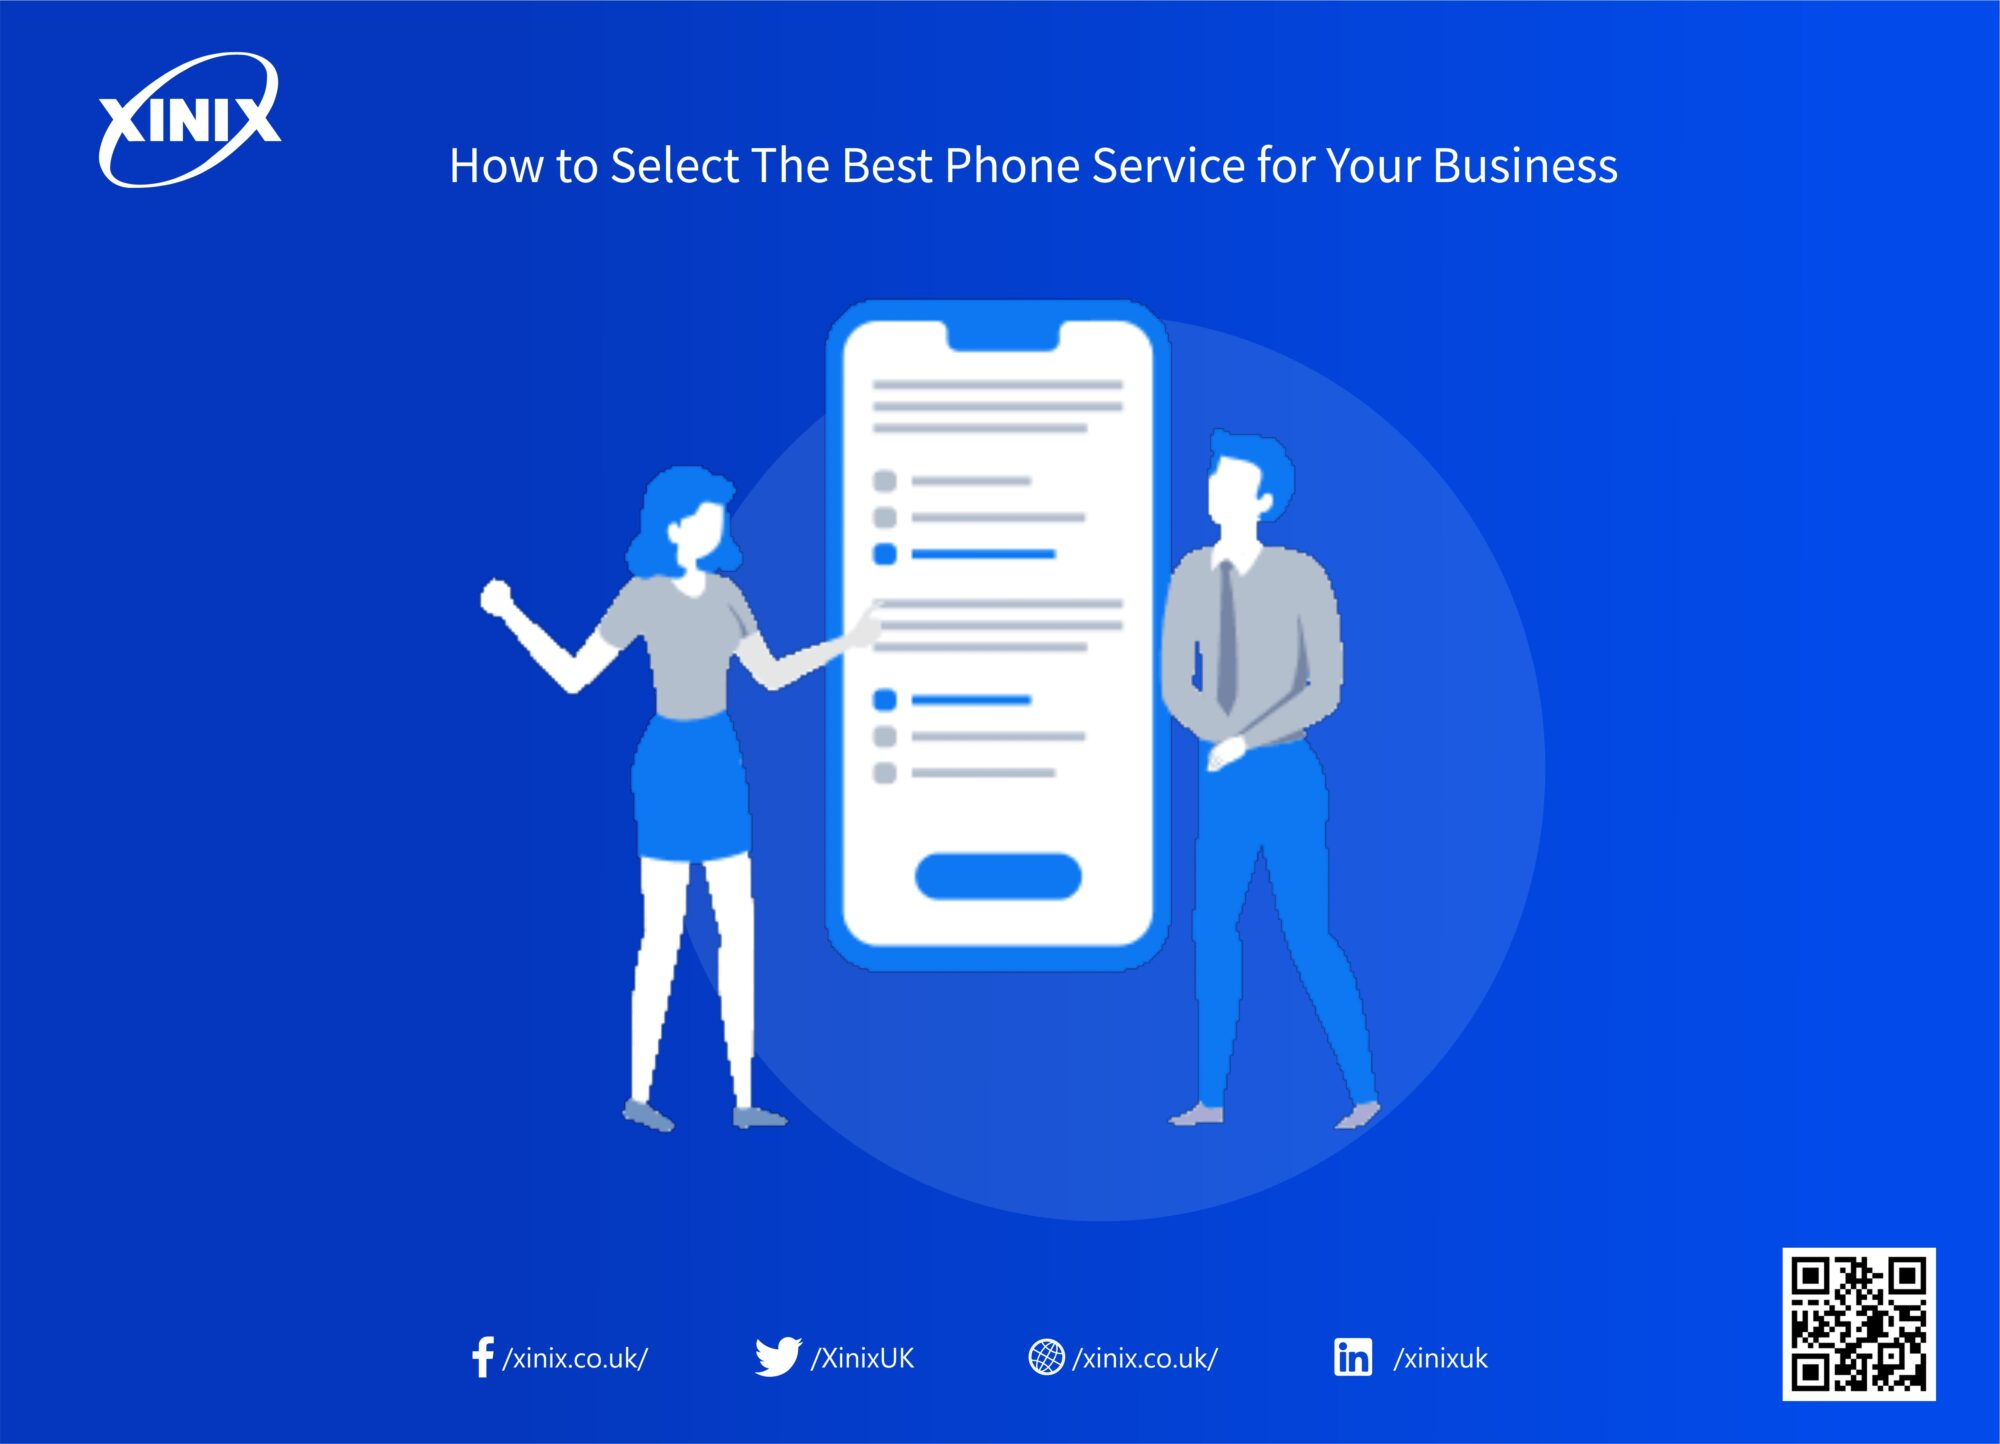 How to Select The Best Phone Service for Your Business